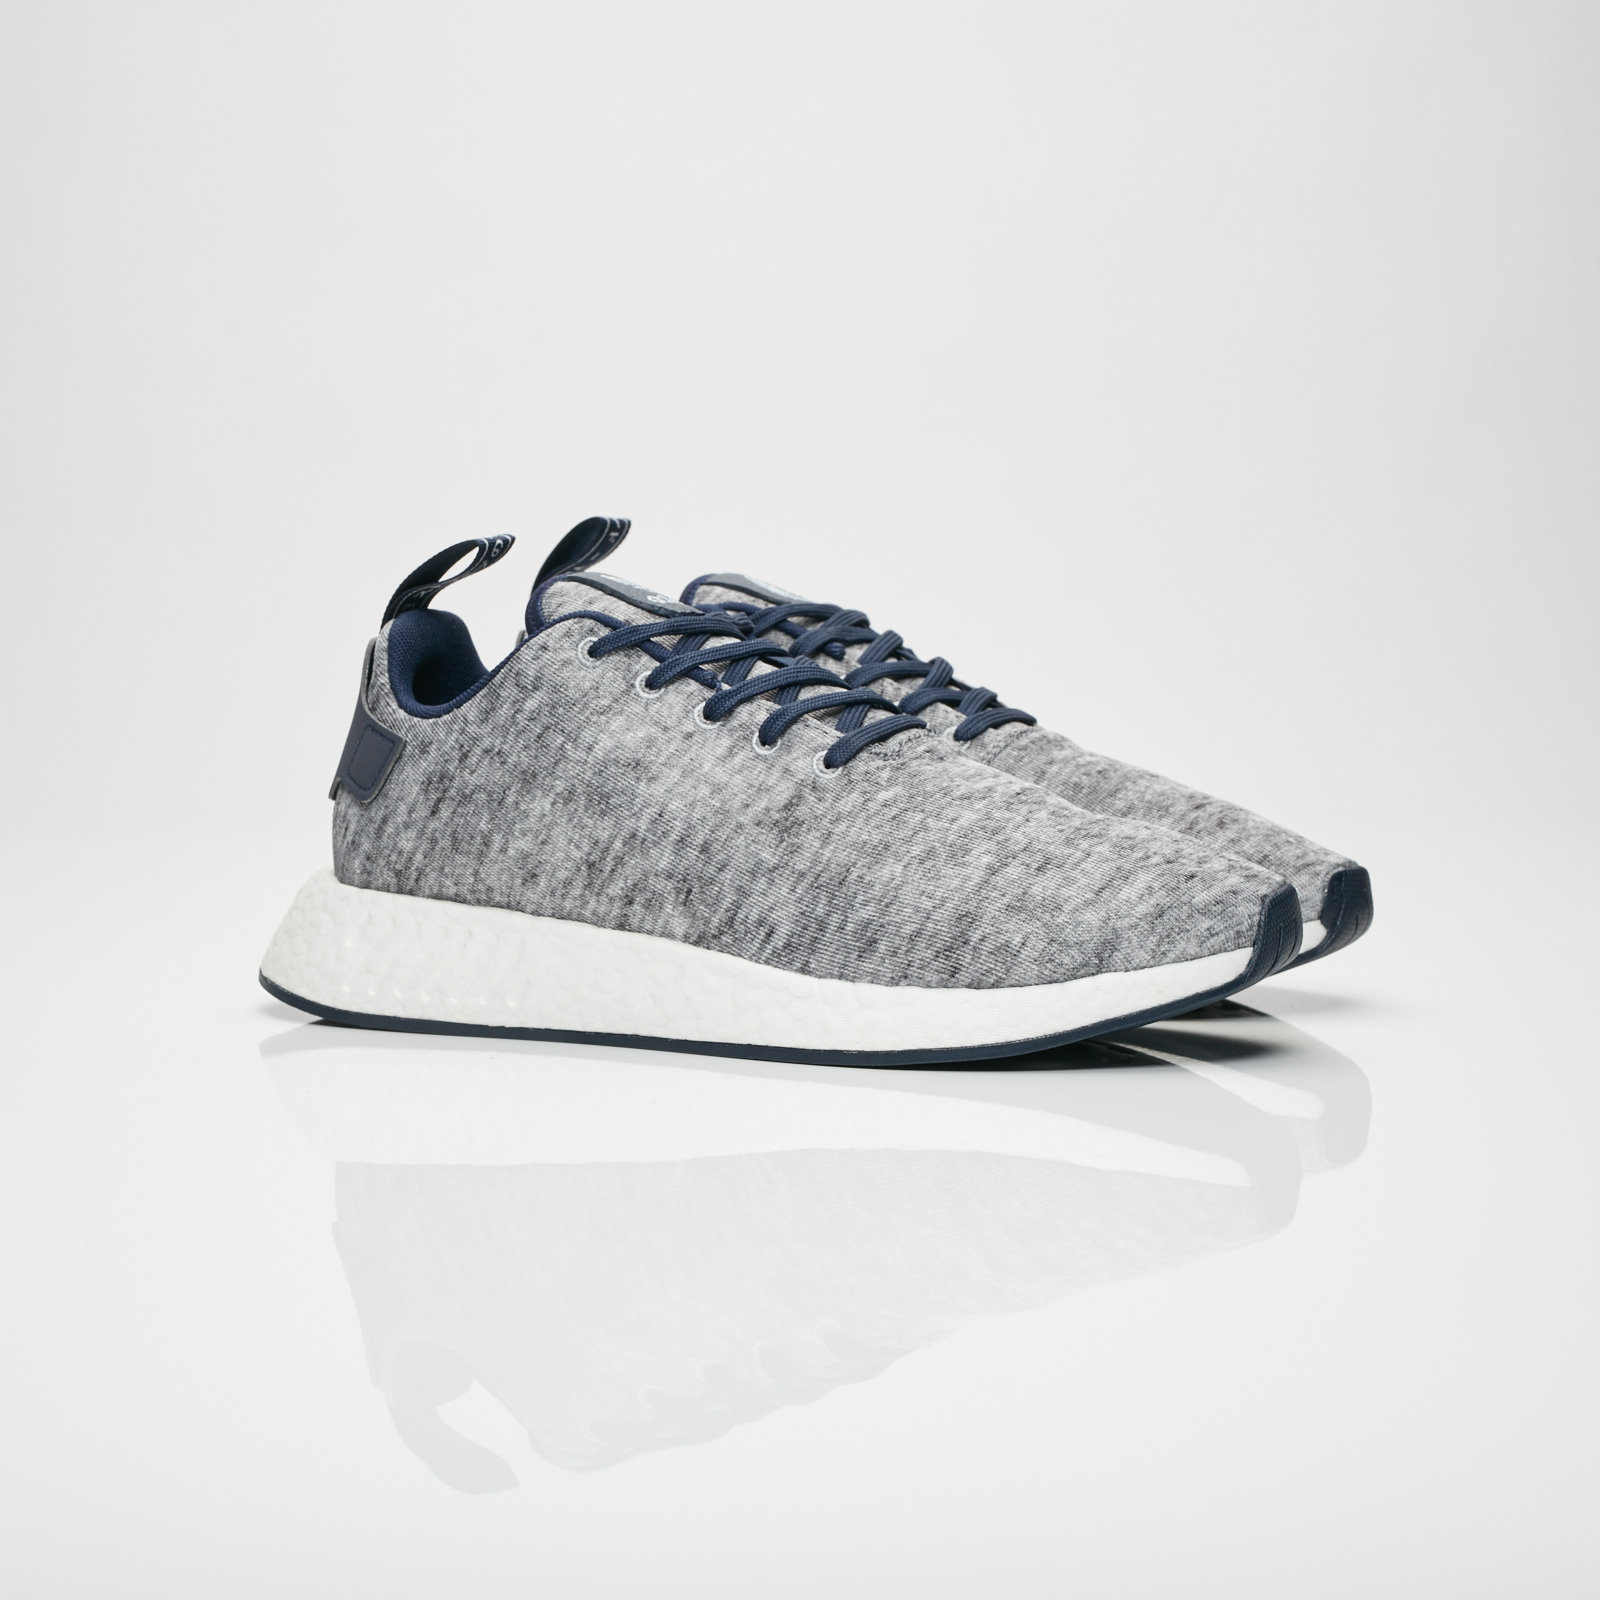 b70ab66d5 adidas NMD R2 x United Arrows   Sons - Da8834 - Sneakersnstuff ...